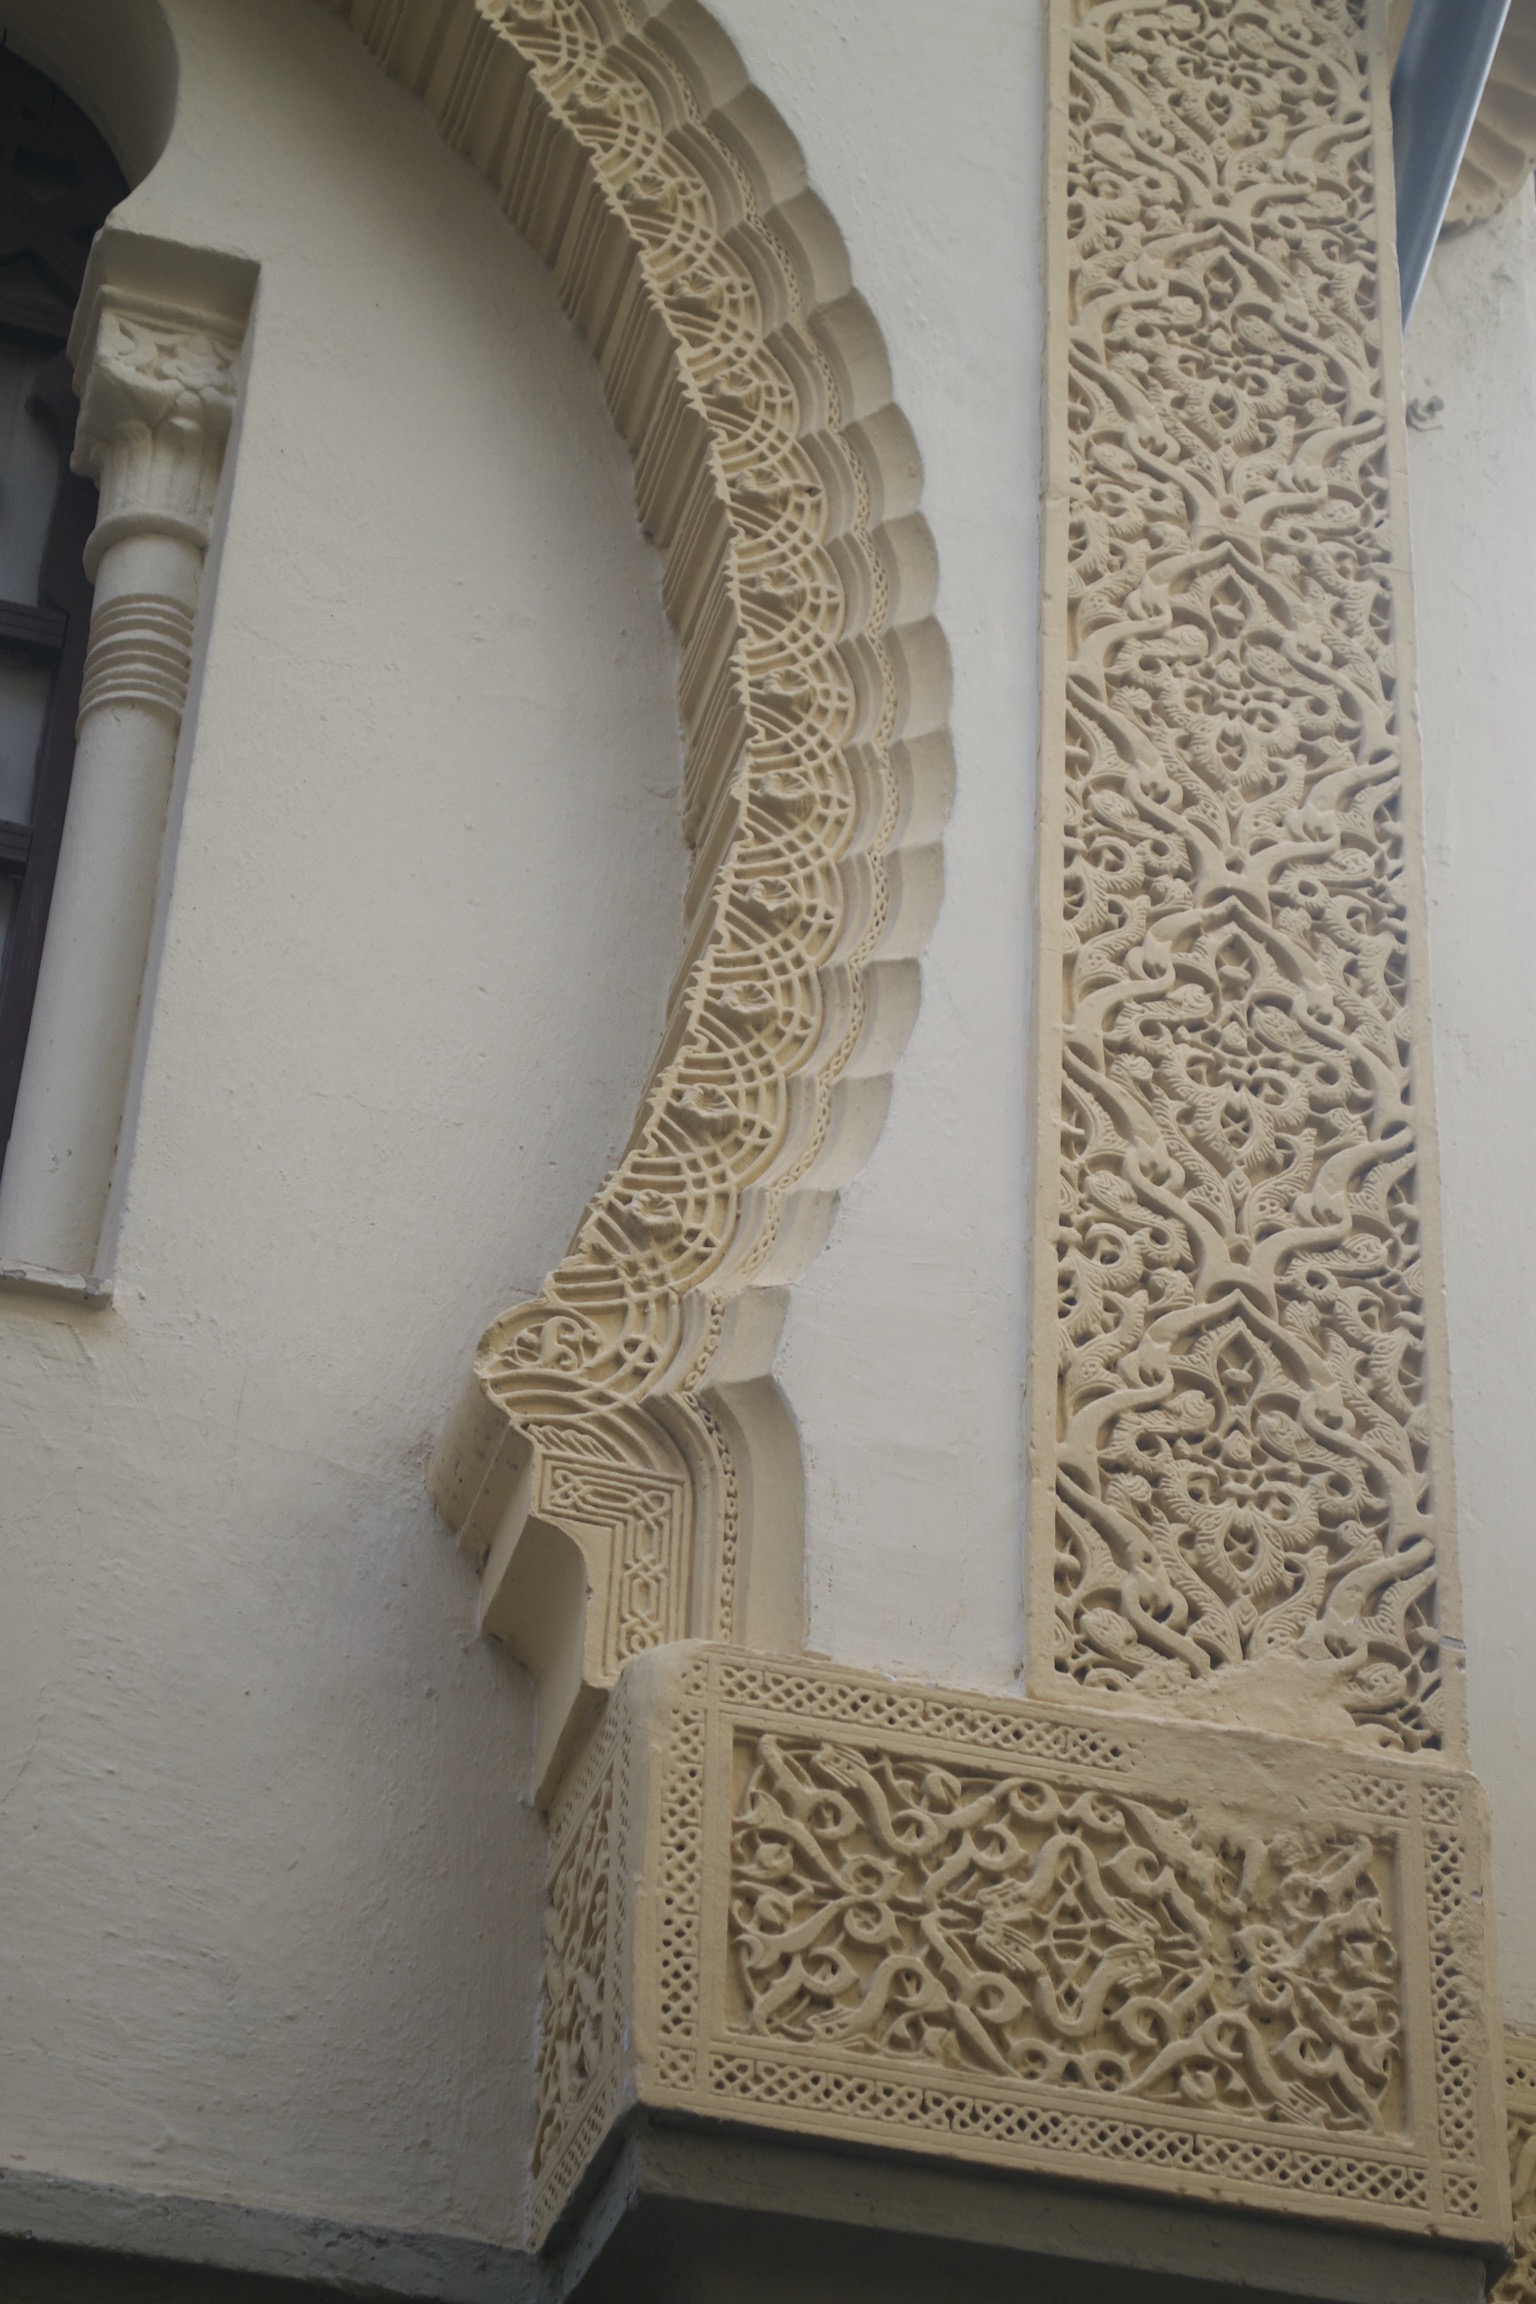 Delicate geometric carvings surround a window.